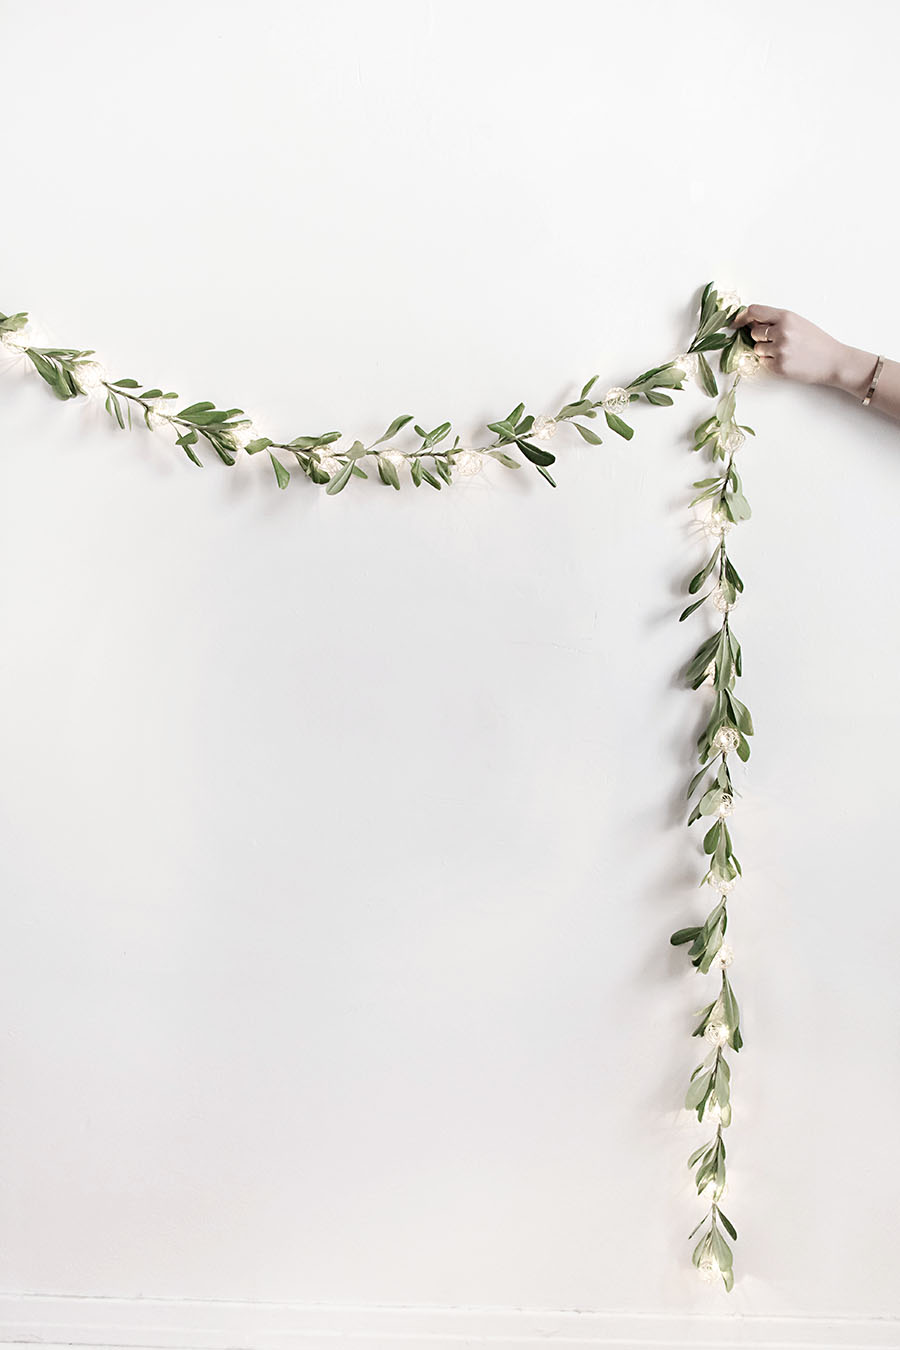 String Lights Of Garland : DIY String Lights Garland - Homey Oh My